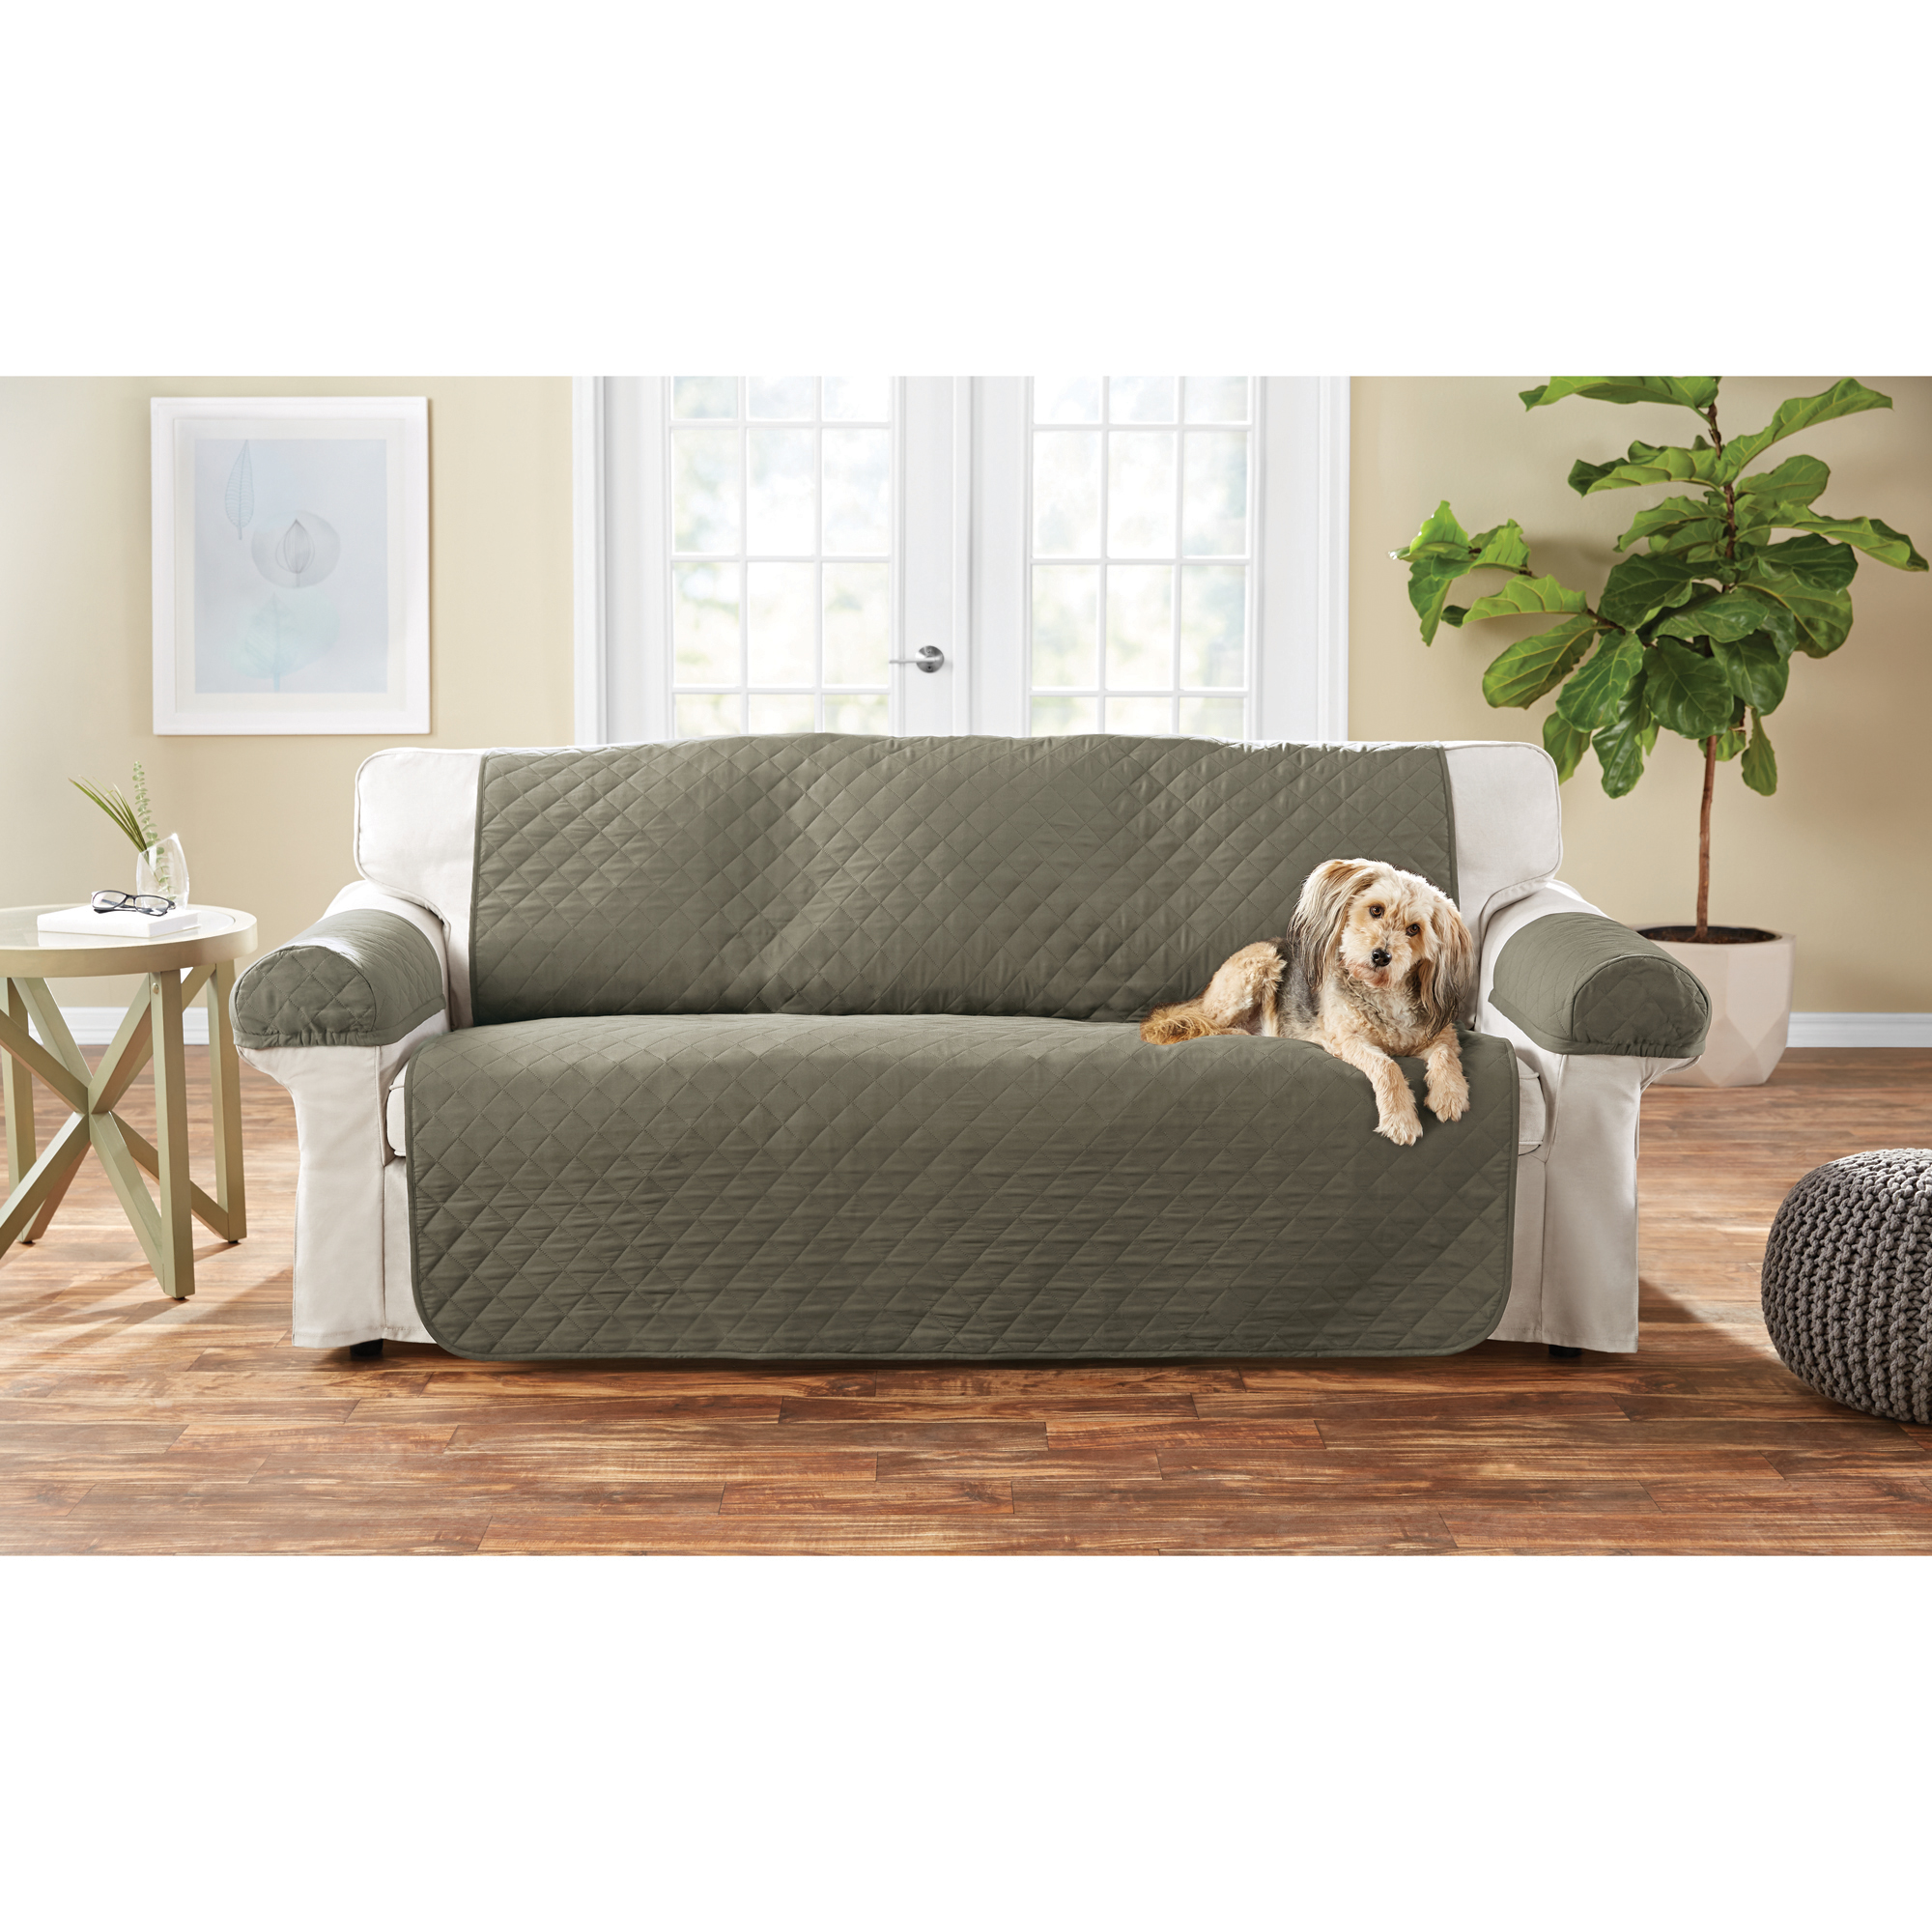 Pleasing Mainstays 3 Piece Sofa Pet Cover Protector With Non Slip Short Links Chair Design For Home Short Linksinfo